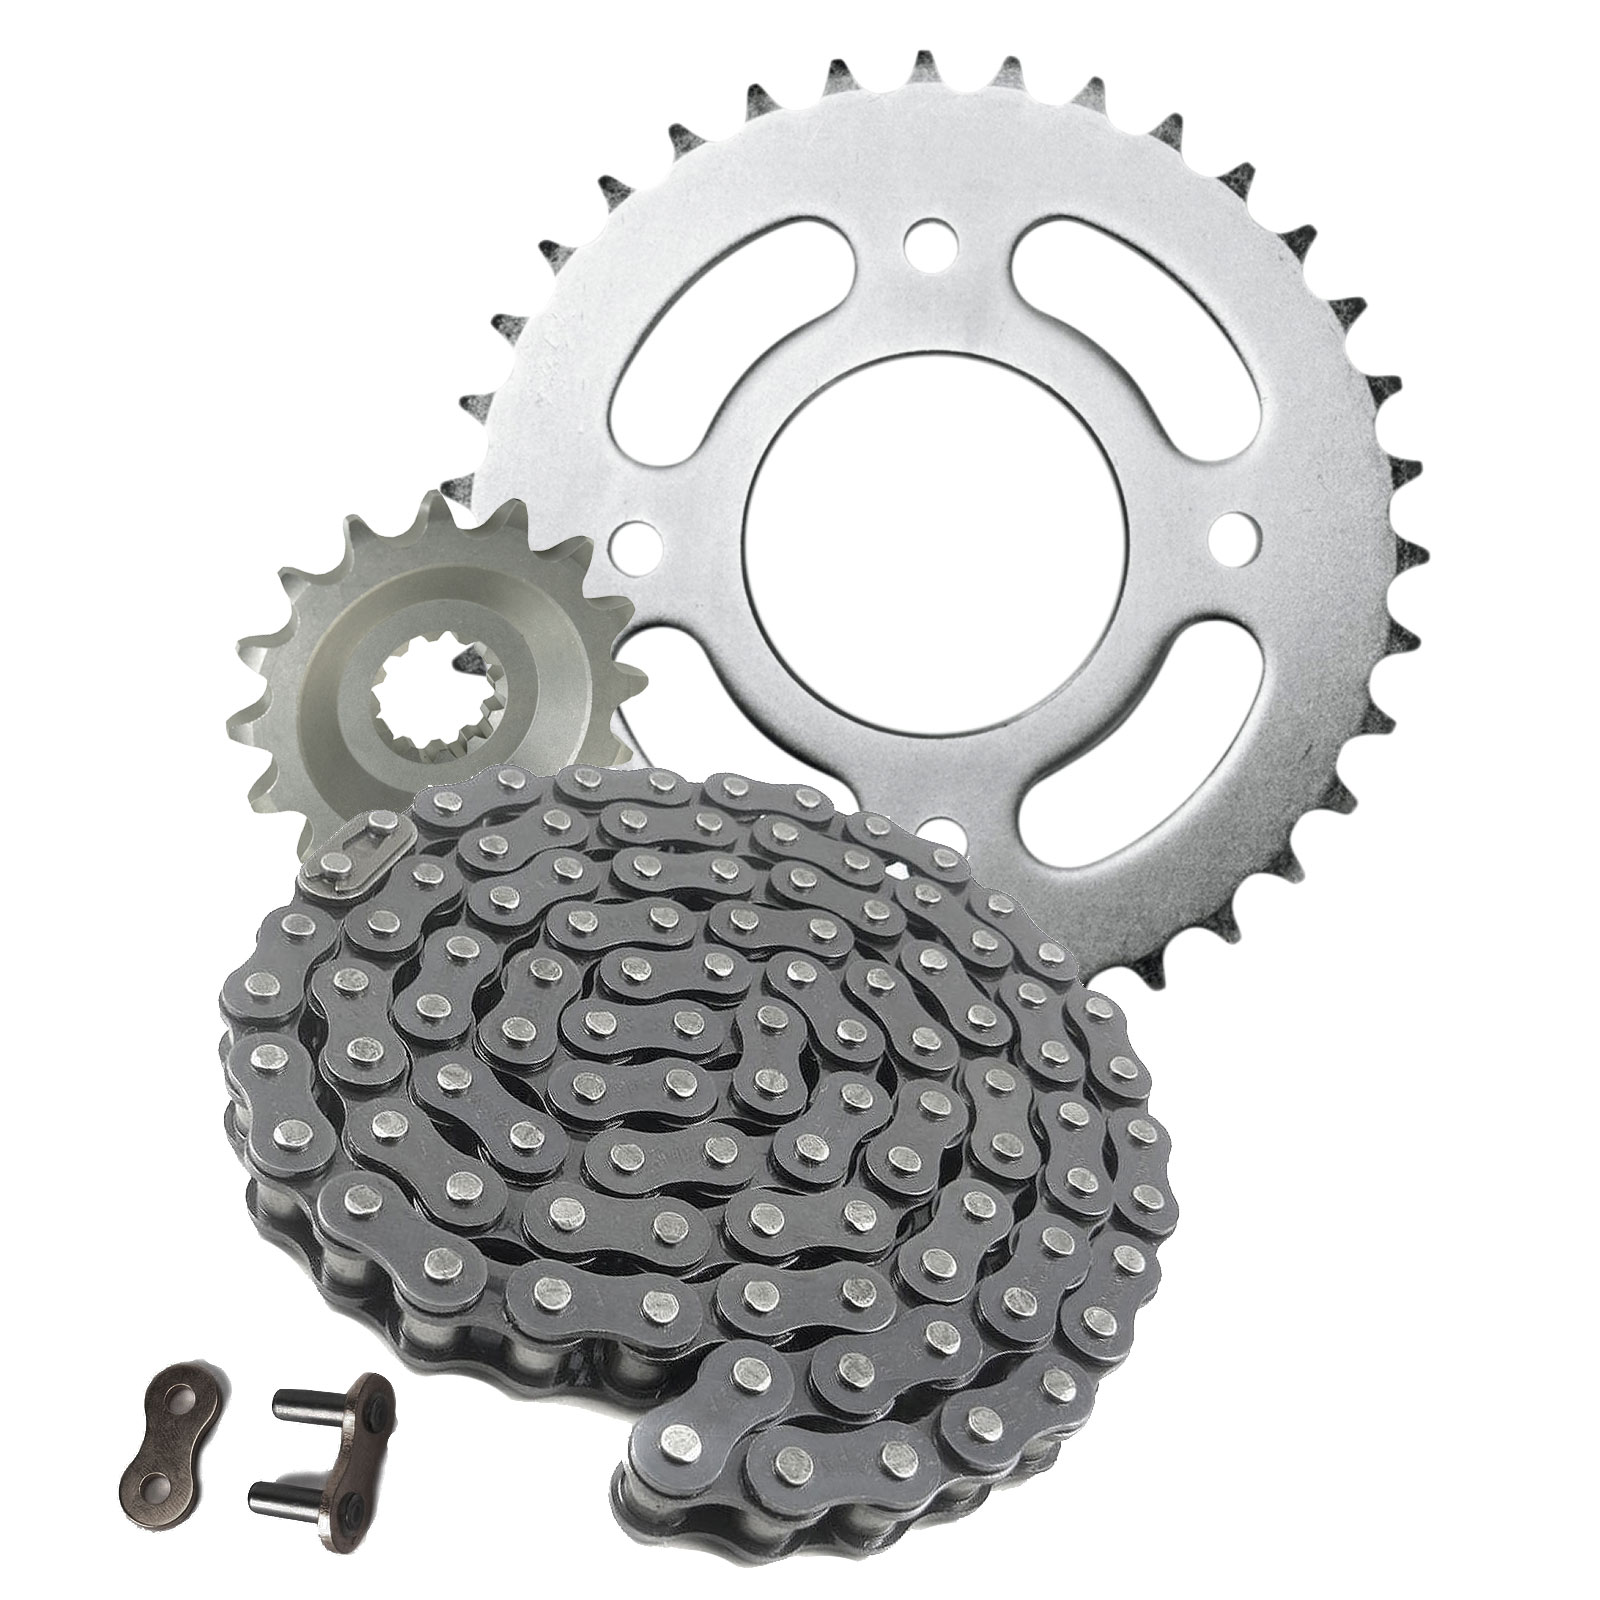 LEXMOTO ADRENALINE 125 Gold DID Chain /& Sprocket Kit **FREE CHAIN LUBE**